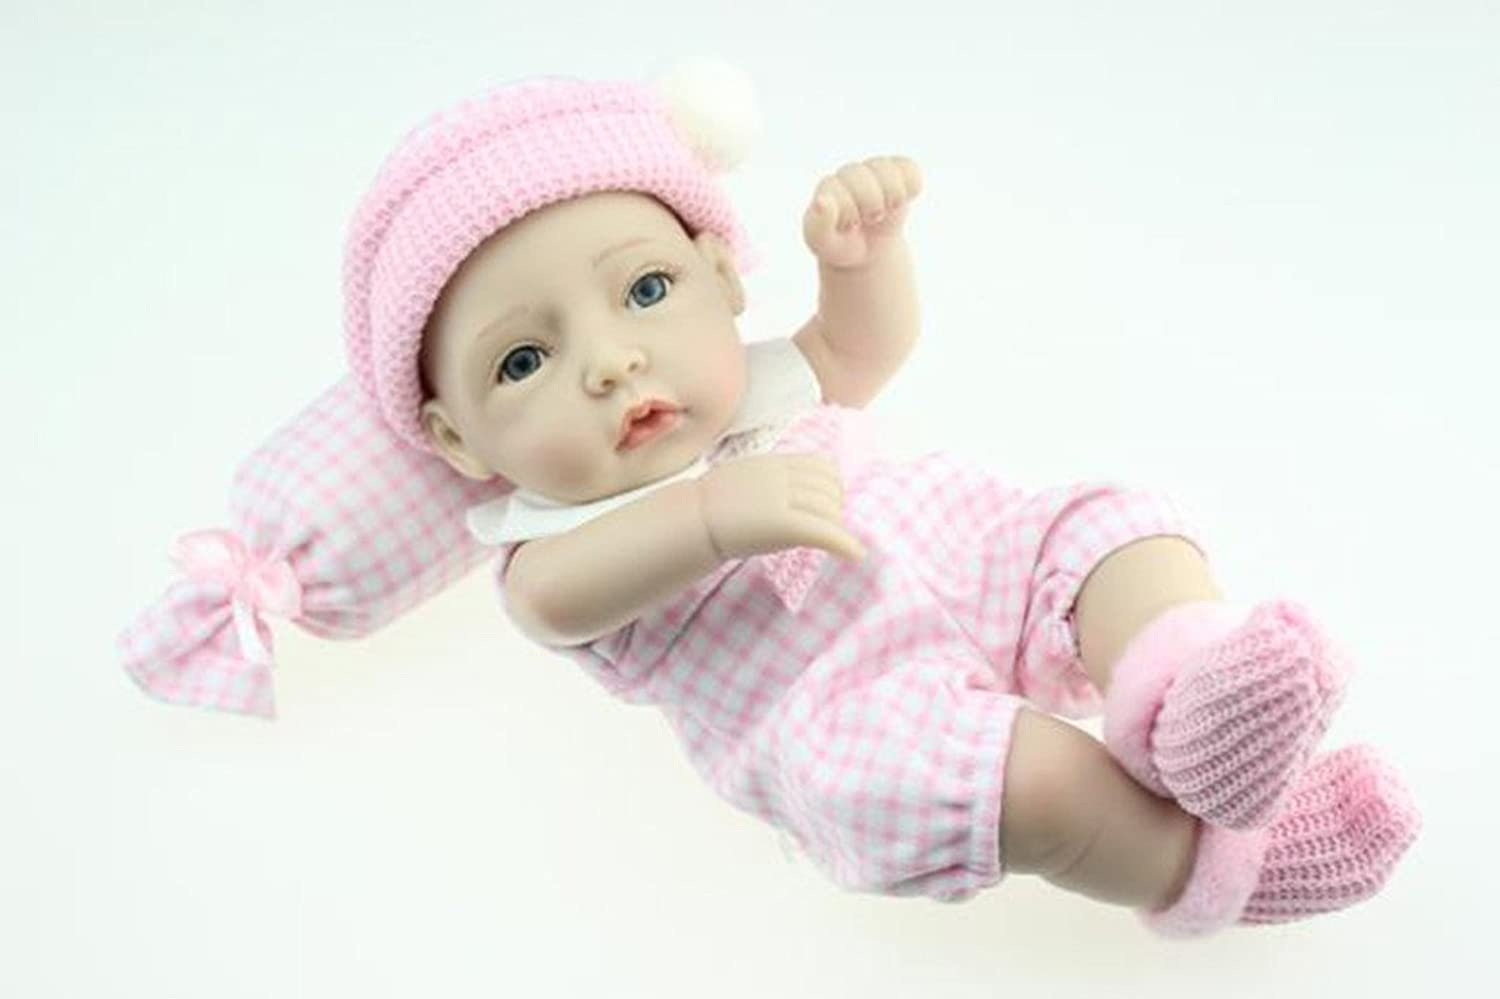 TERABITHIA Mini 11  Real Life Beautiful Dreamer Newborn Baby Doll Full Silicone Vinyl Collectible Toys for Girl